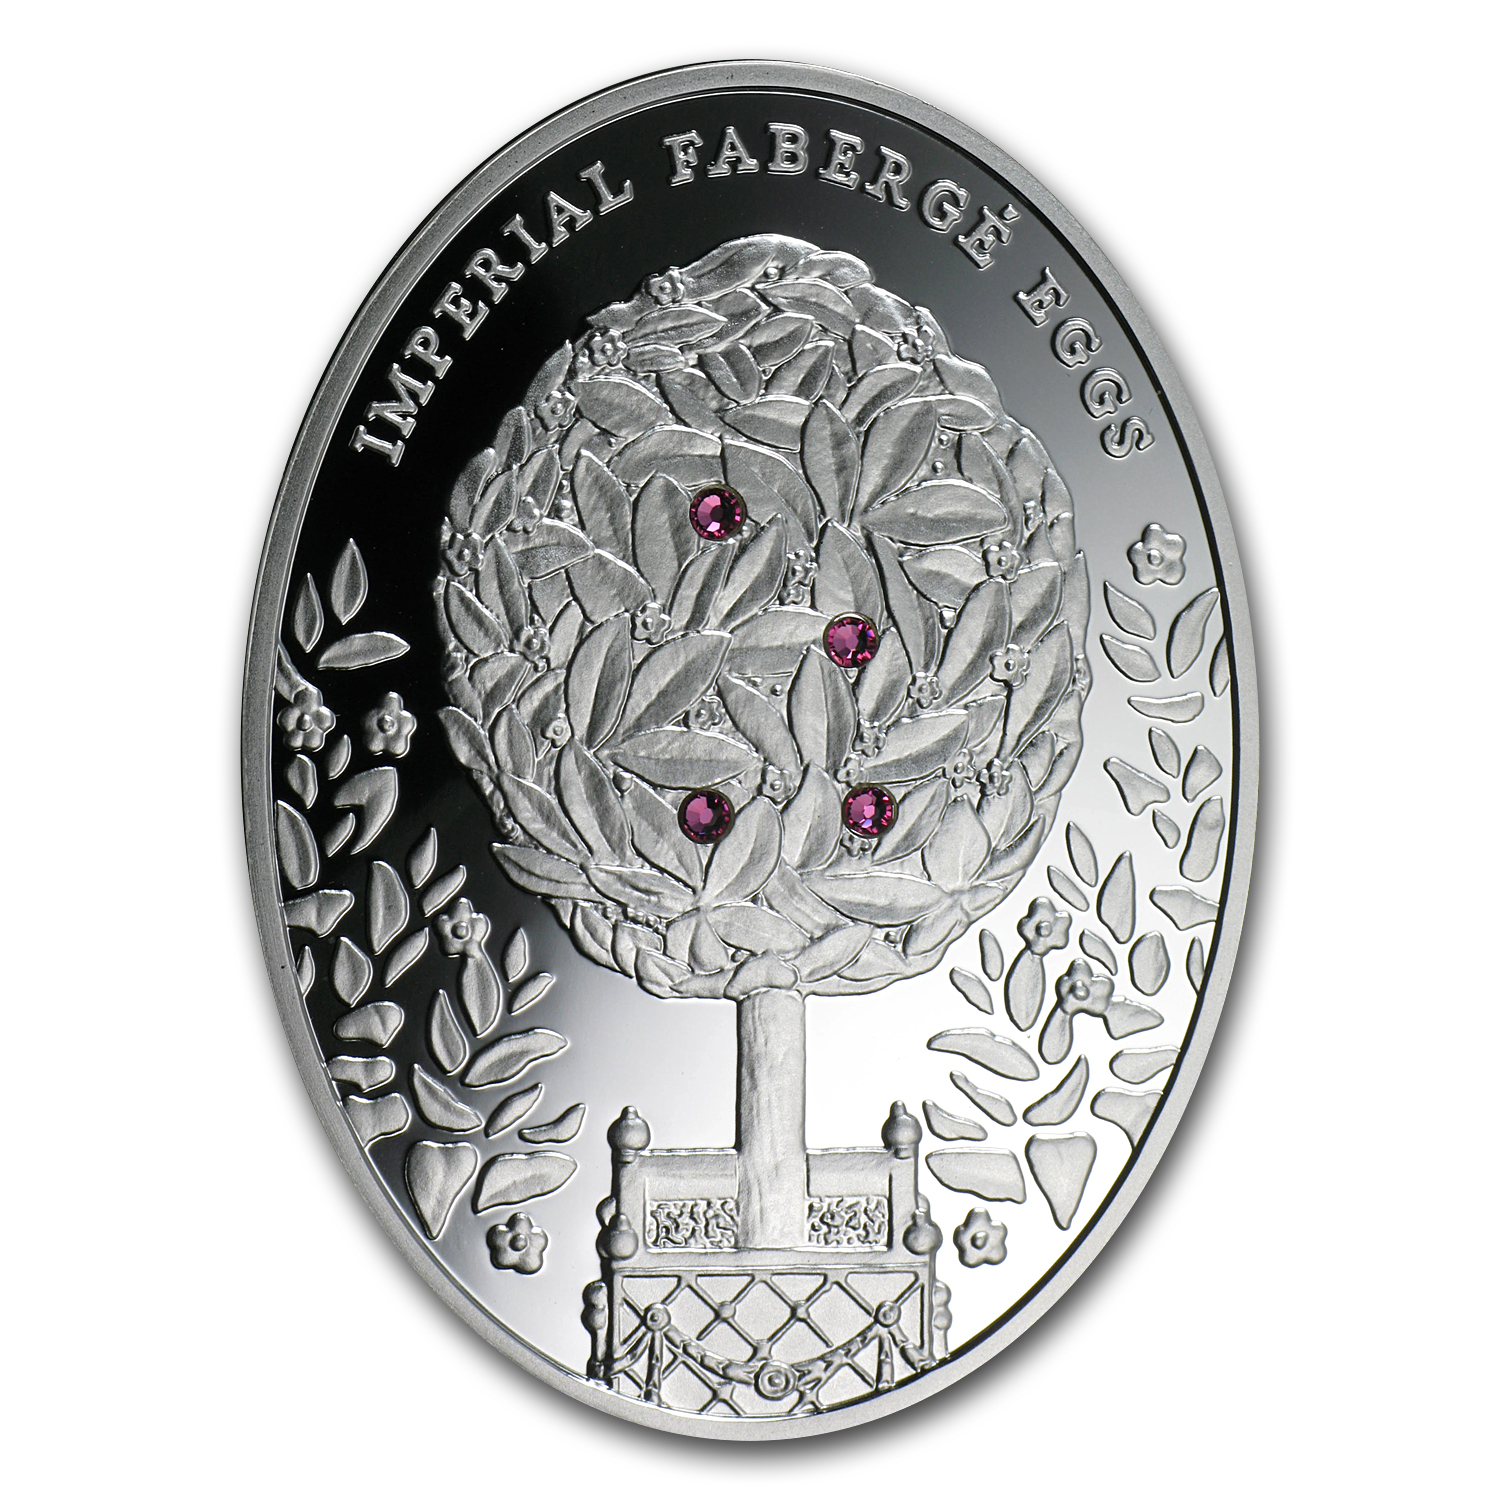 Niue 2012 Proof Silver $2 Imperial Faberge Eggs - Bay Tree